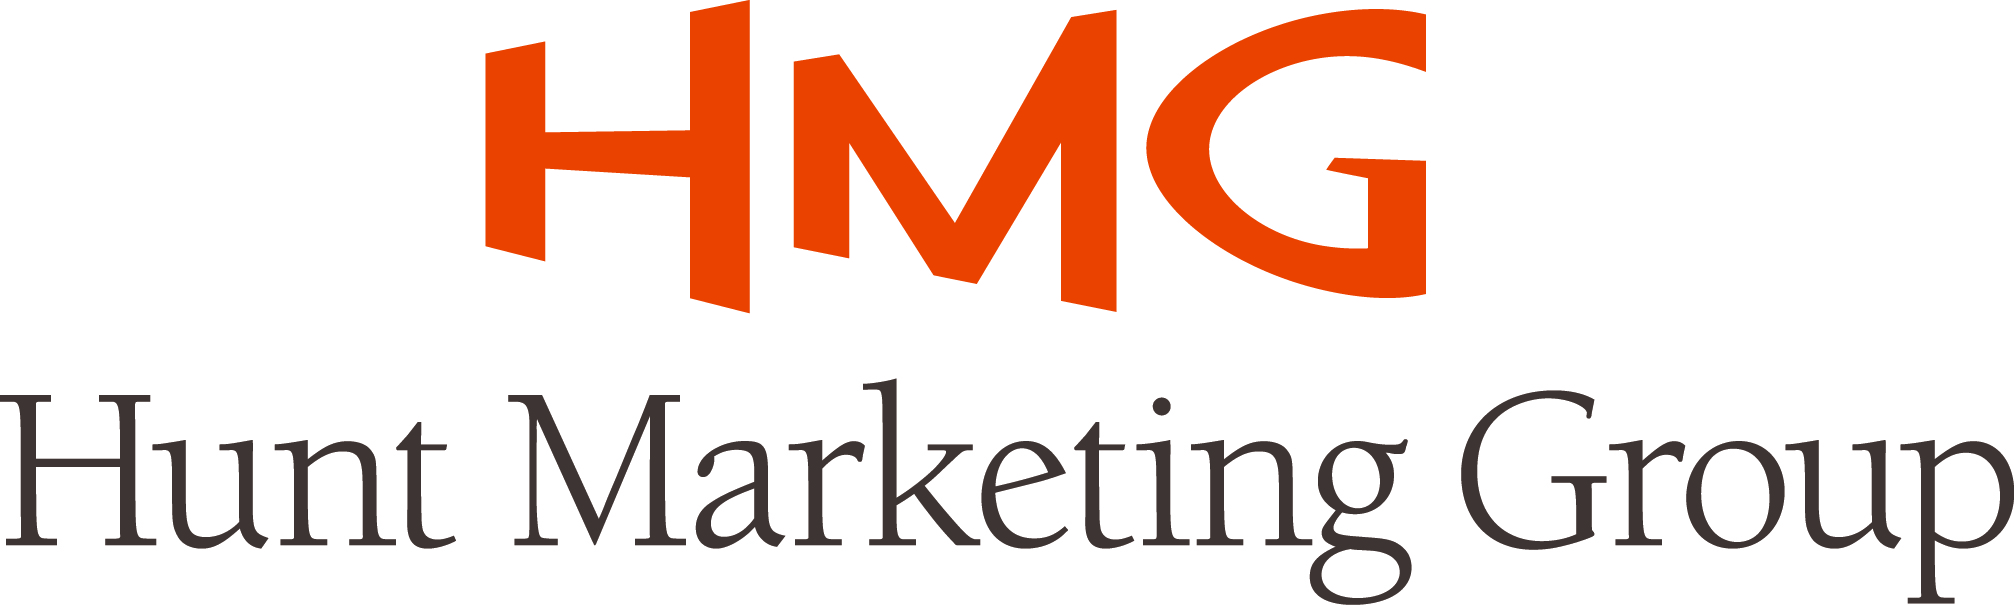 Hunt Marketing Group